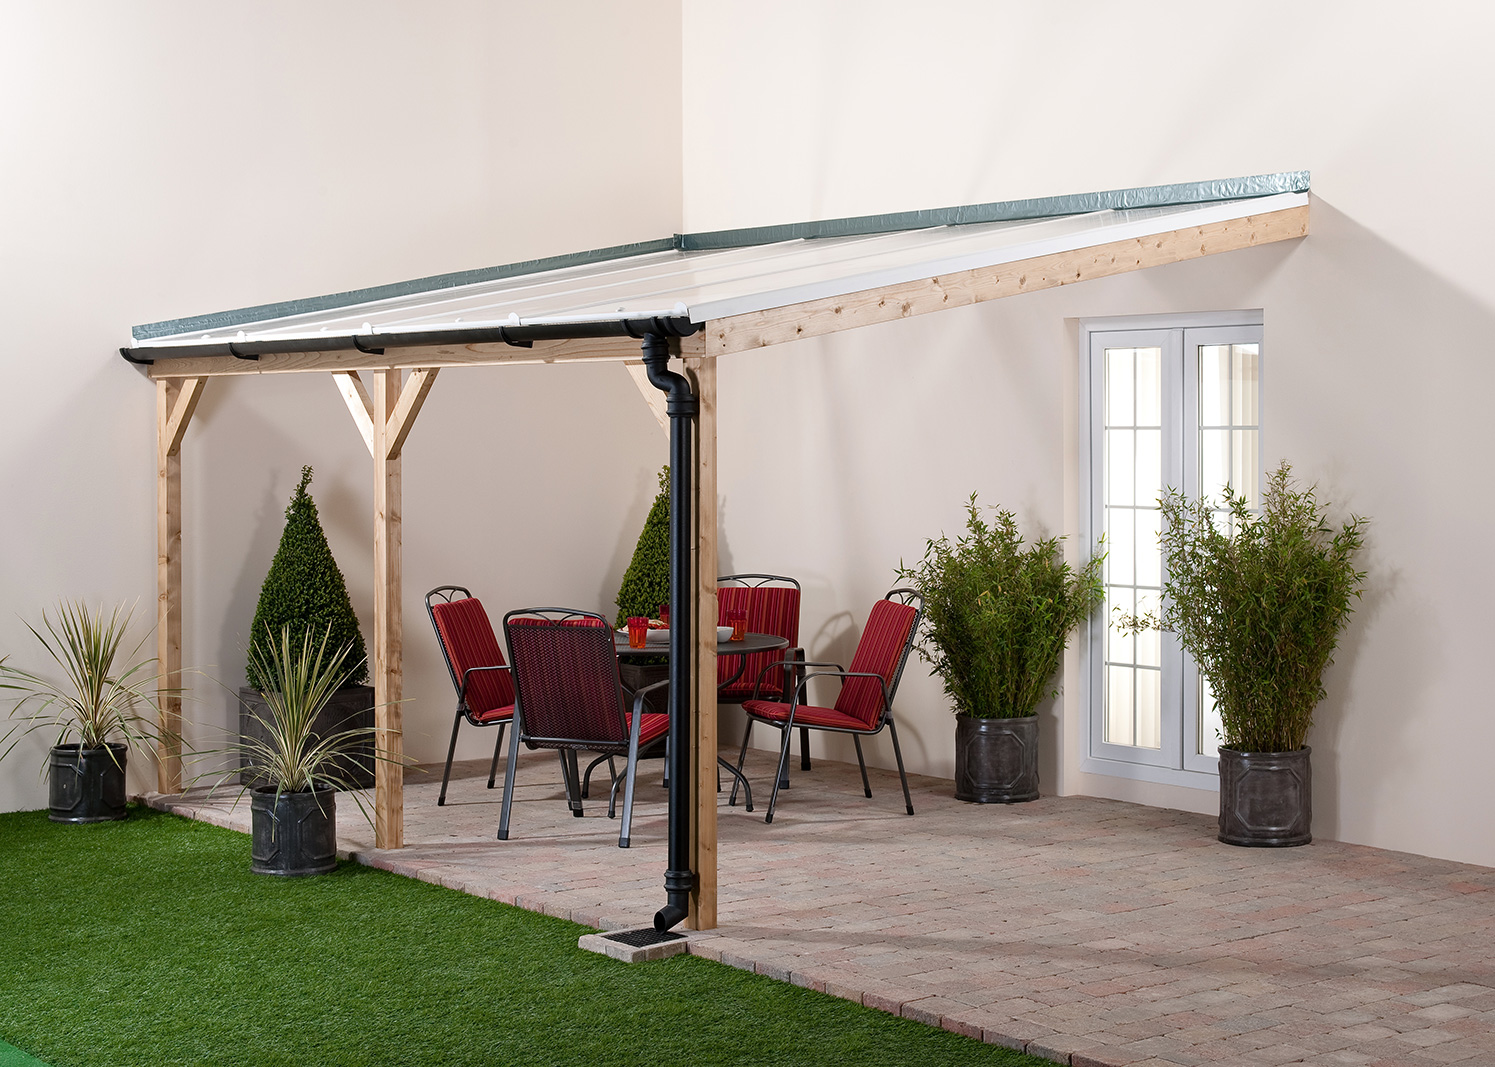 STUNNING FEATURES & BENEFITS OF POLYCARBONATE ROOFING